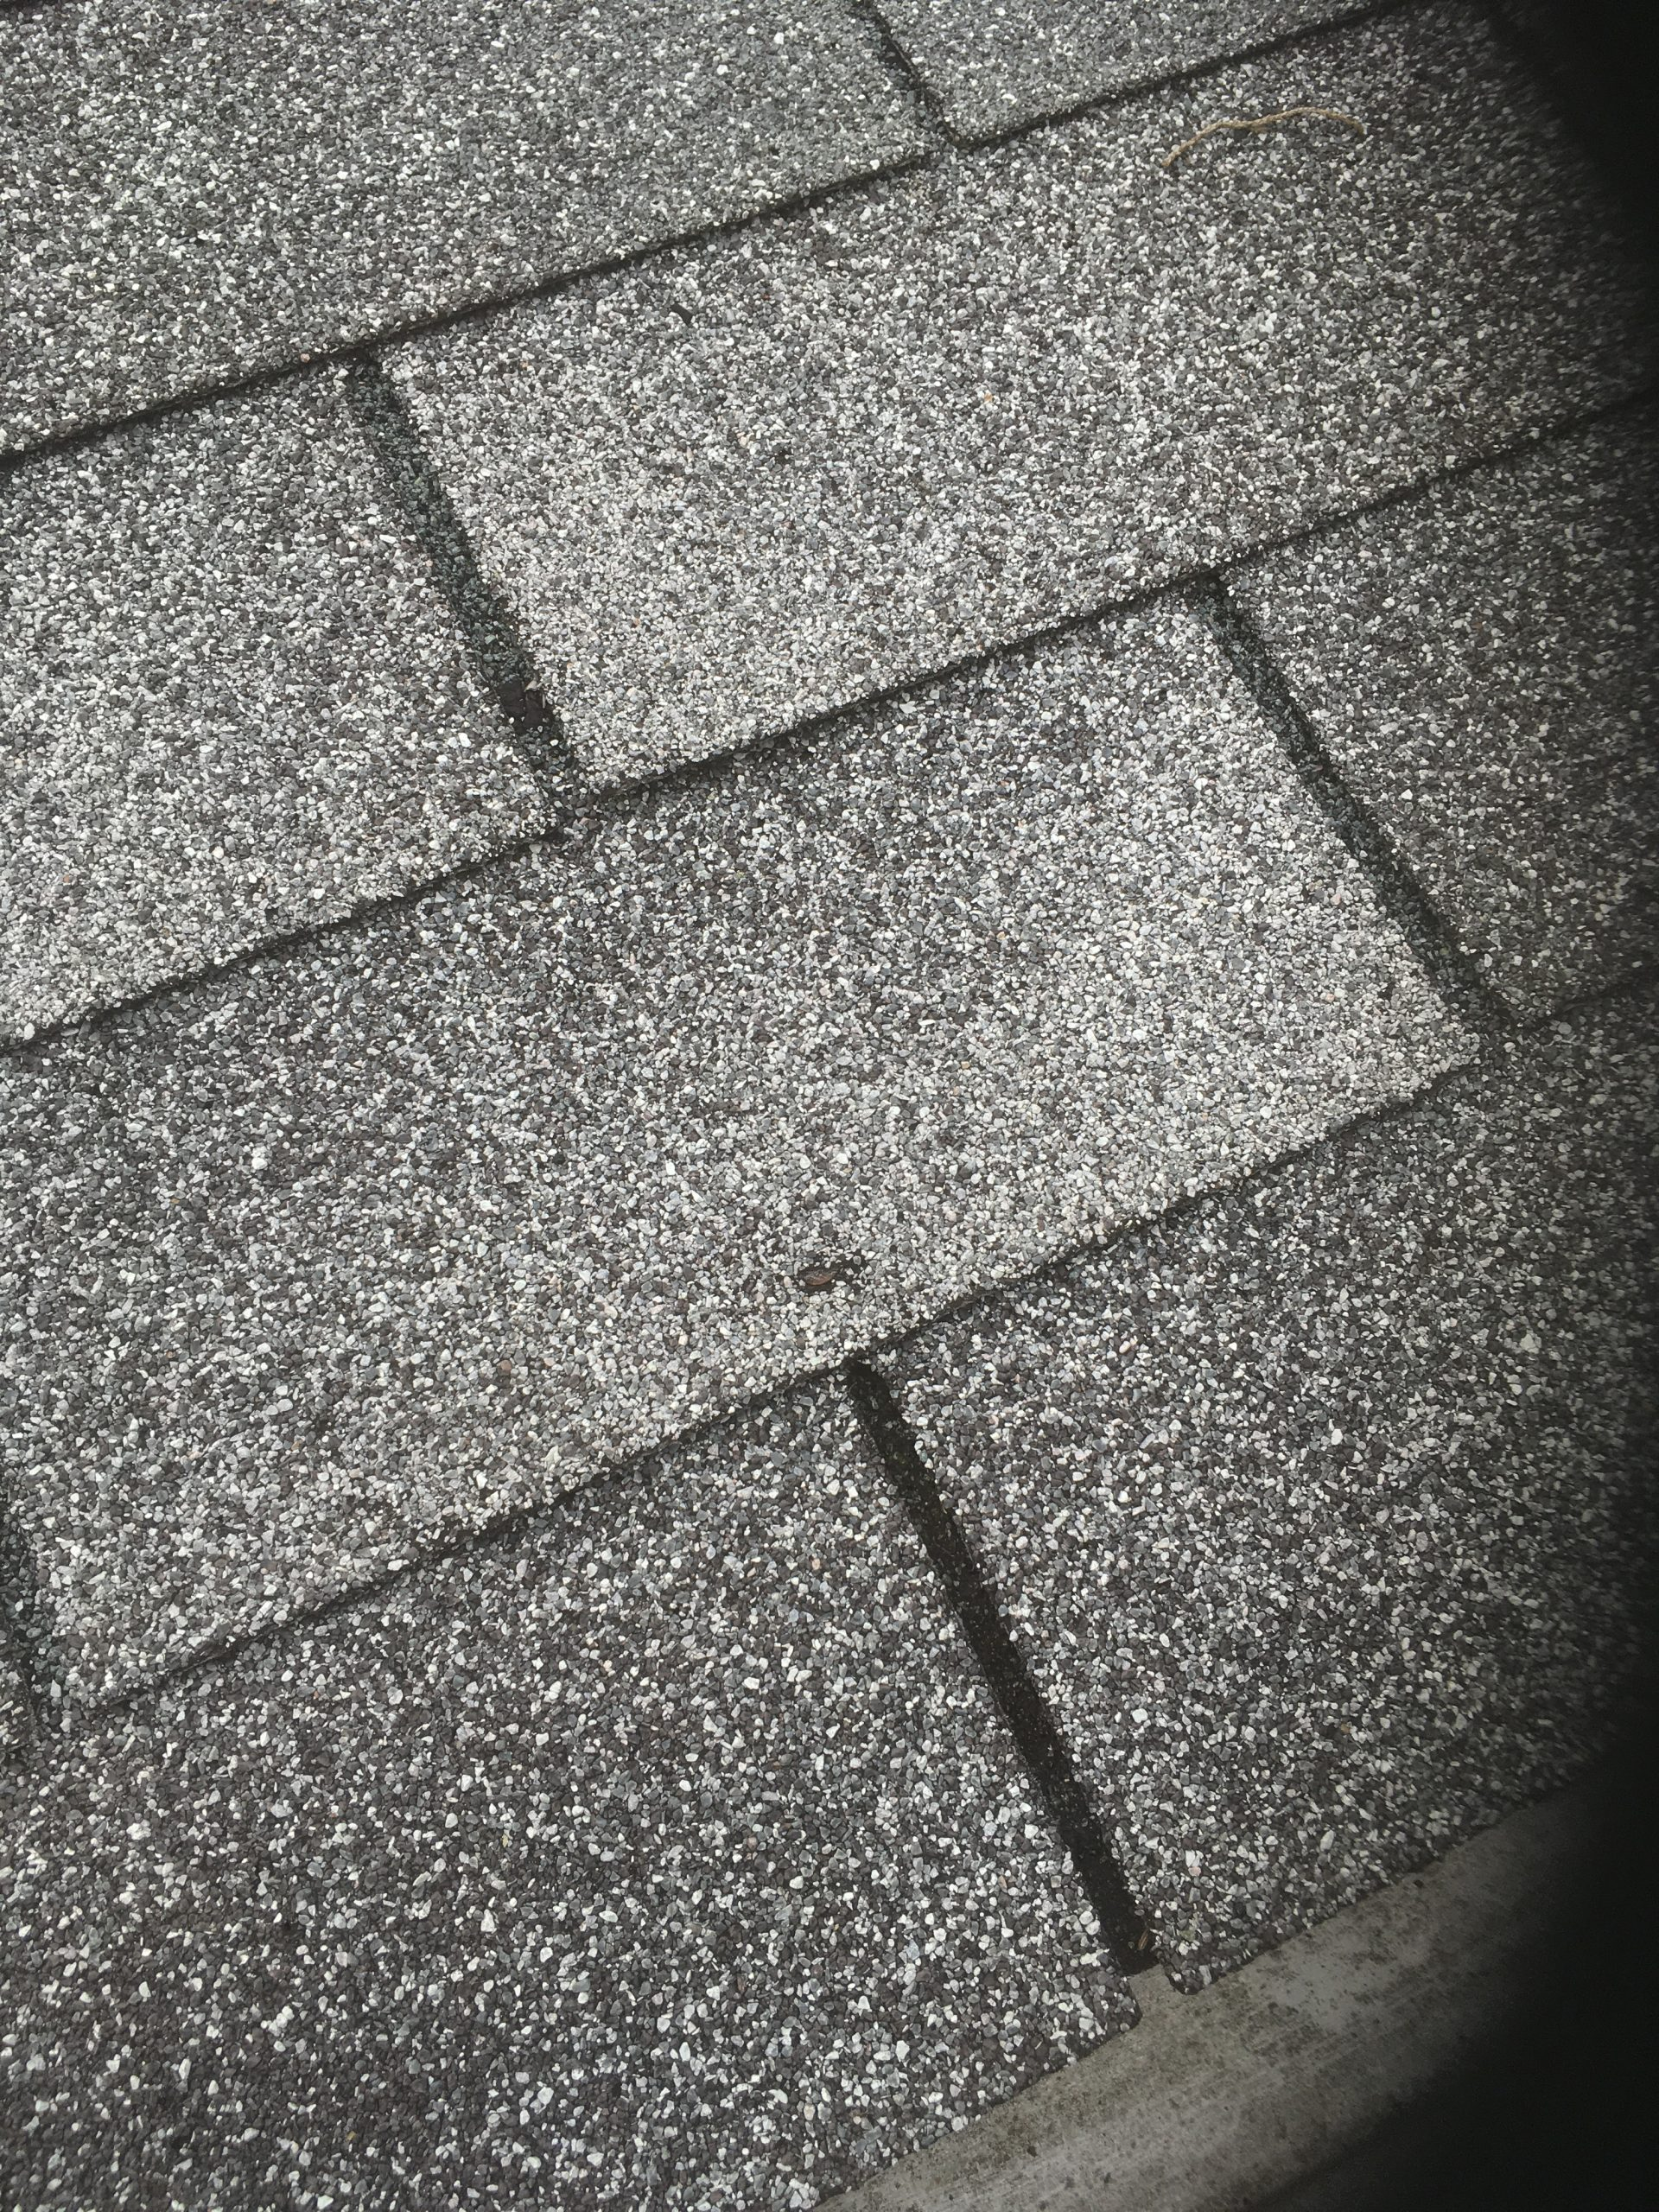 this is a picture of gray shingles with a nail poking or popping through the shingles